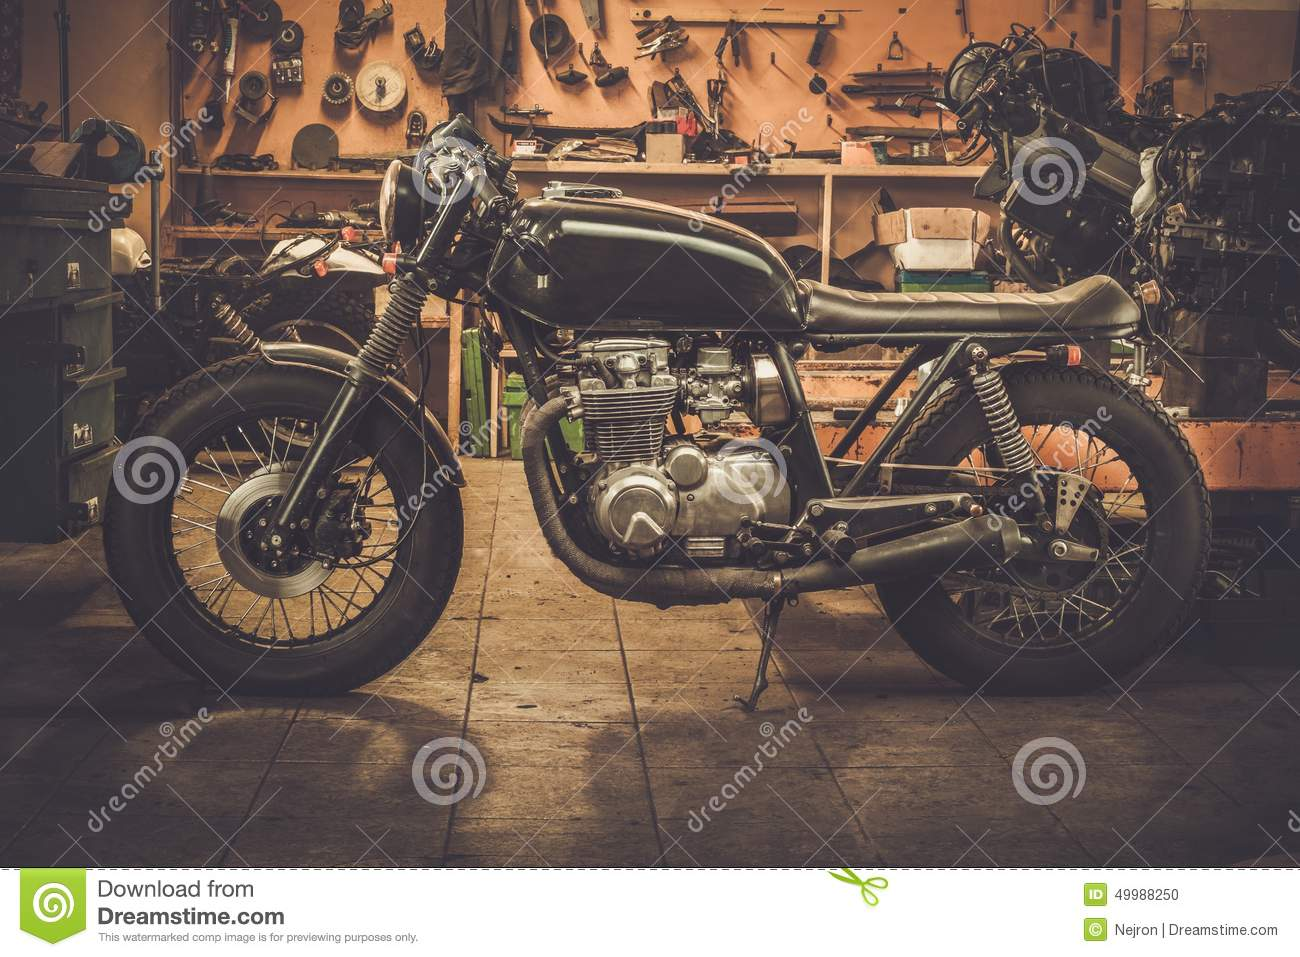 Vintage style cafe-racer motorcycle